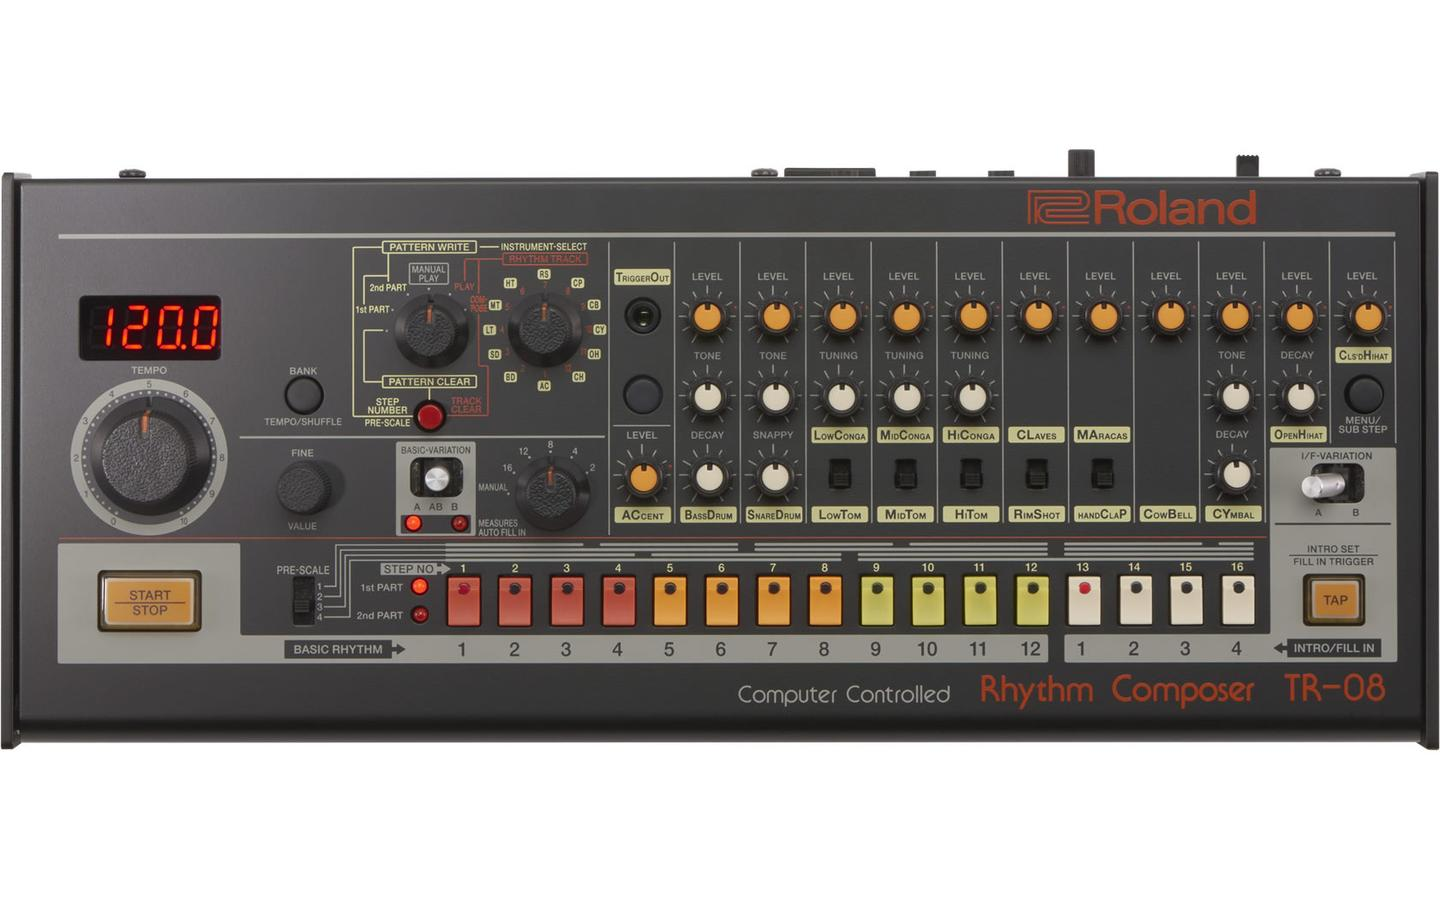 The TR-08 Rhythm Composer has a similar look, feel and sound to the TR-808 released in 1980